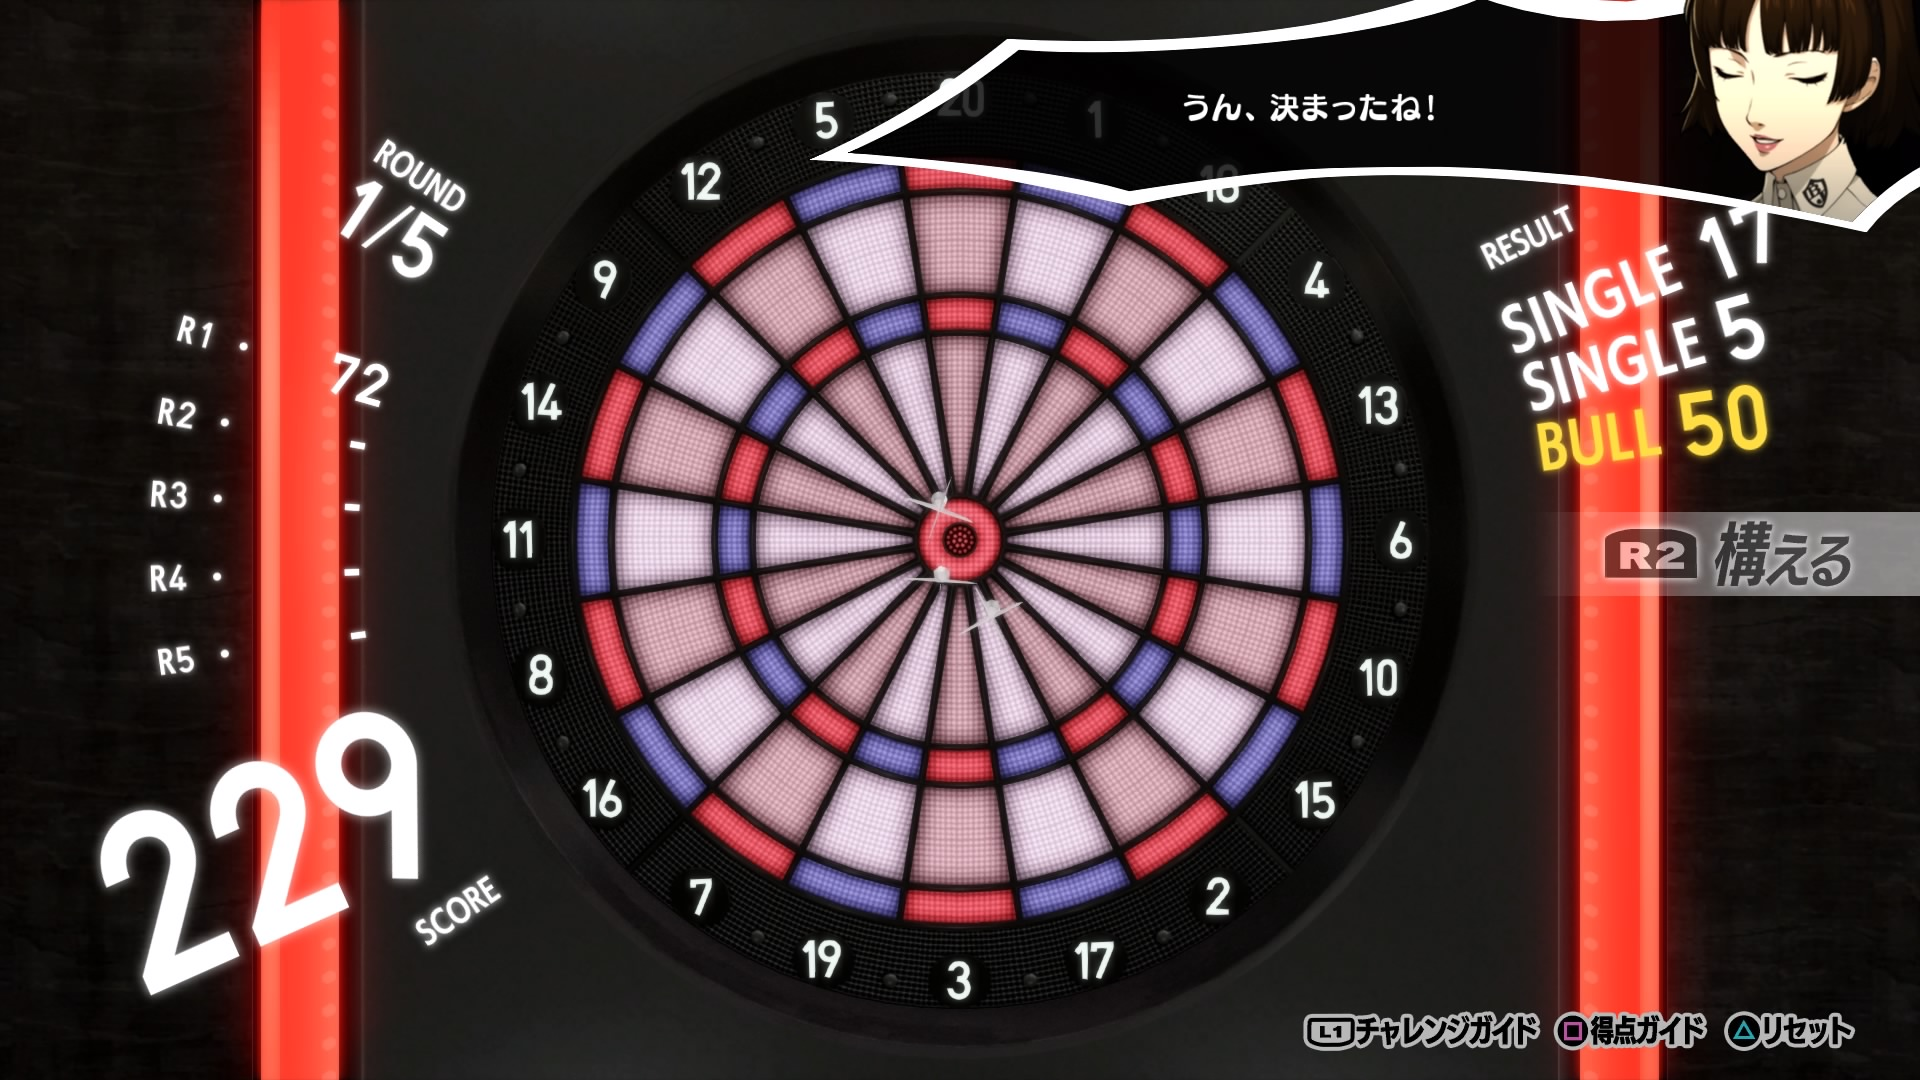 Persona 5 Royal darts